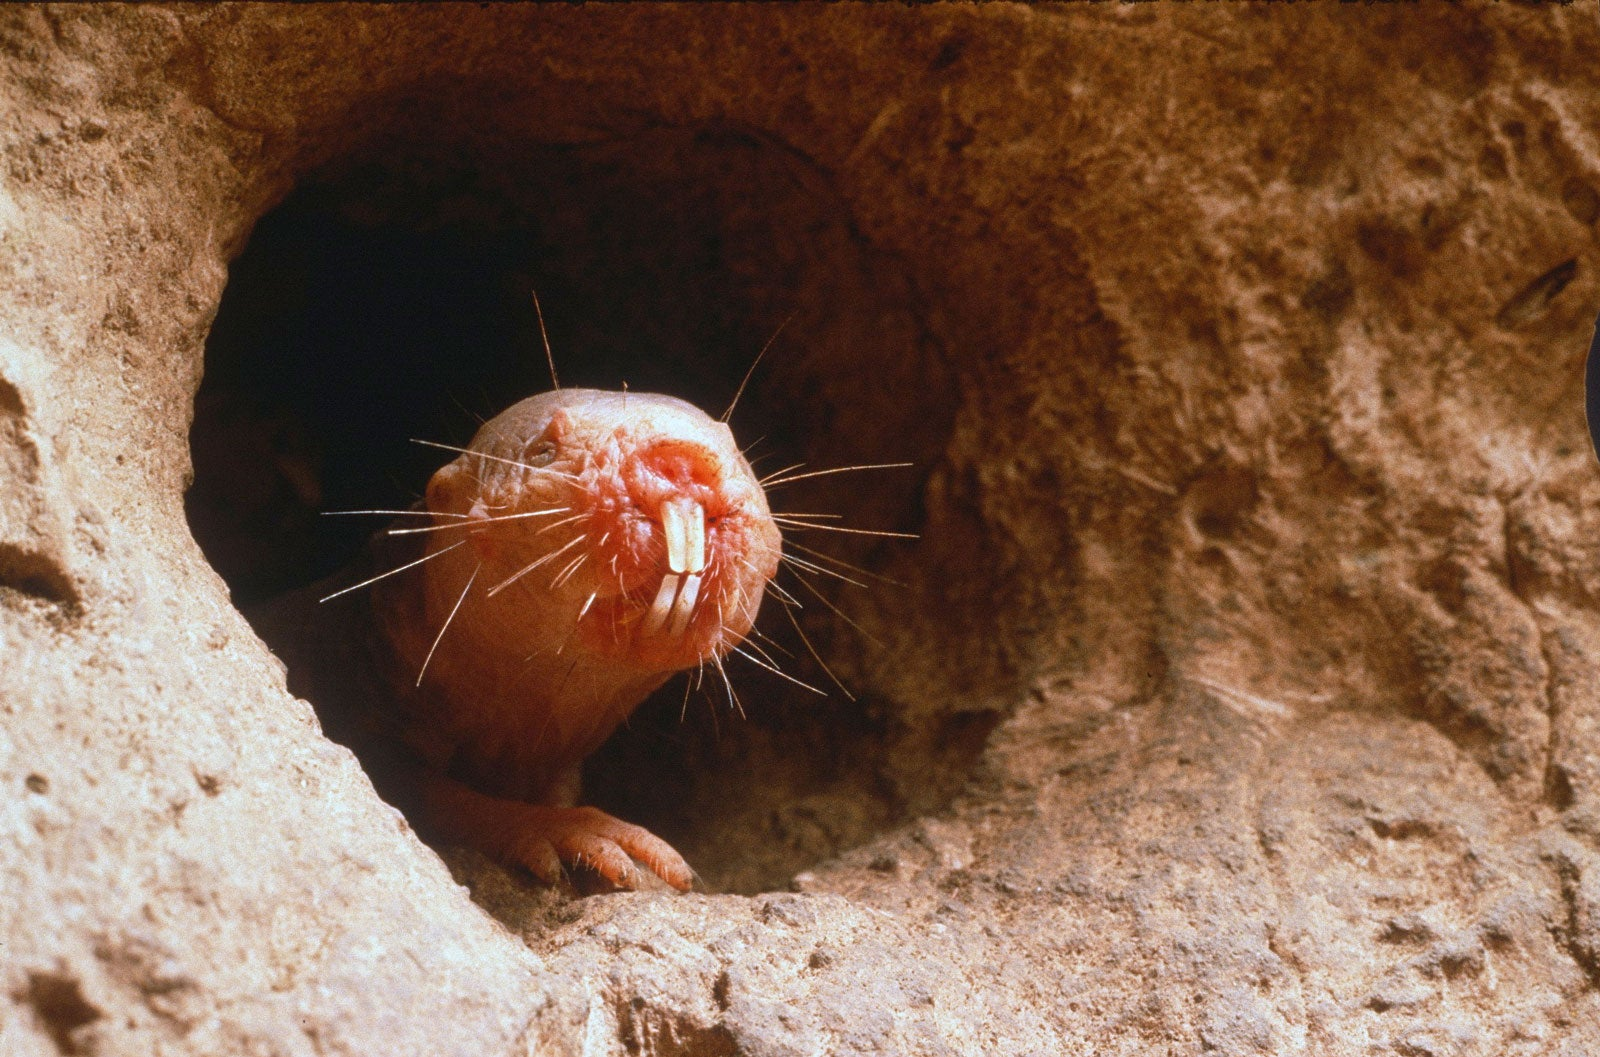 The naked mole rat, bald with whiskers and large front teeth emerging from its burrow